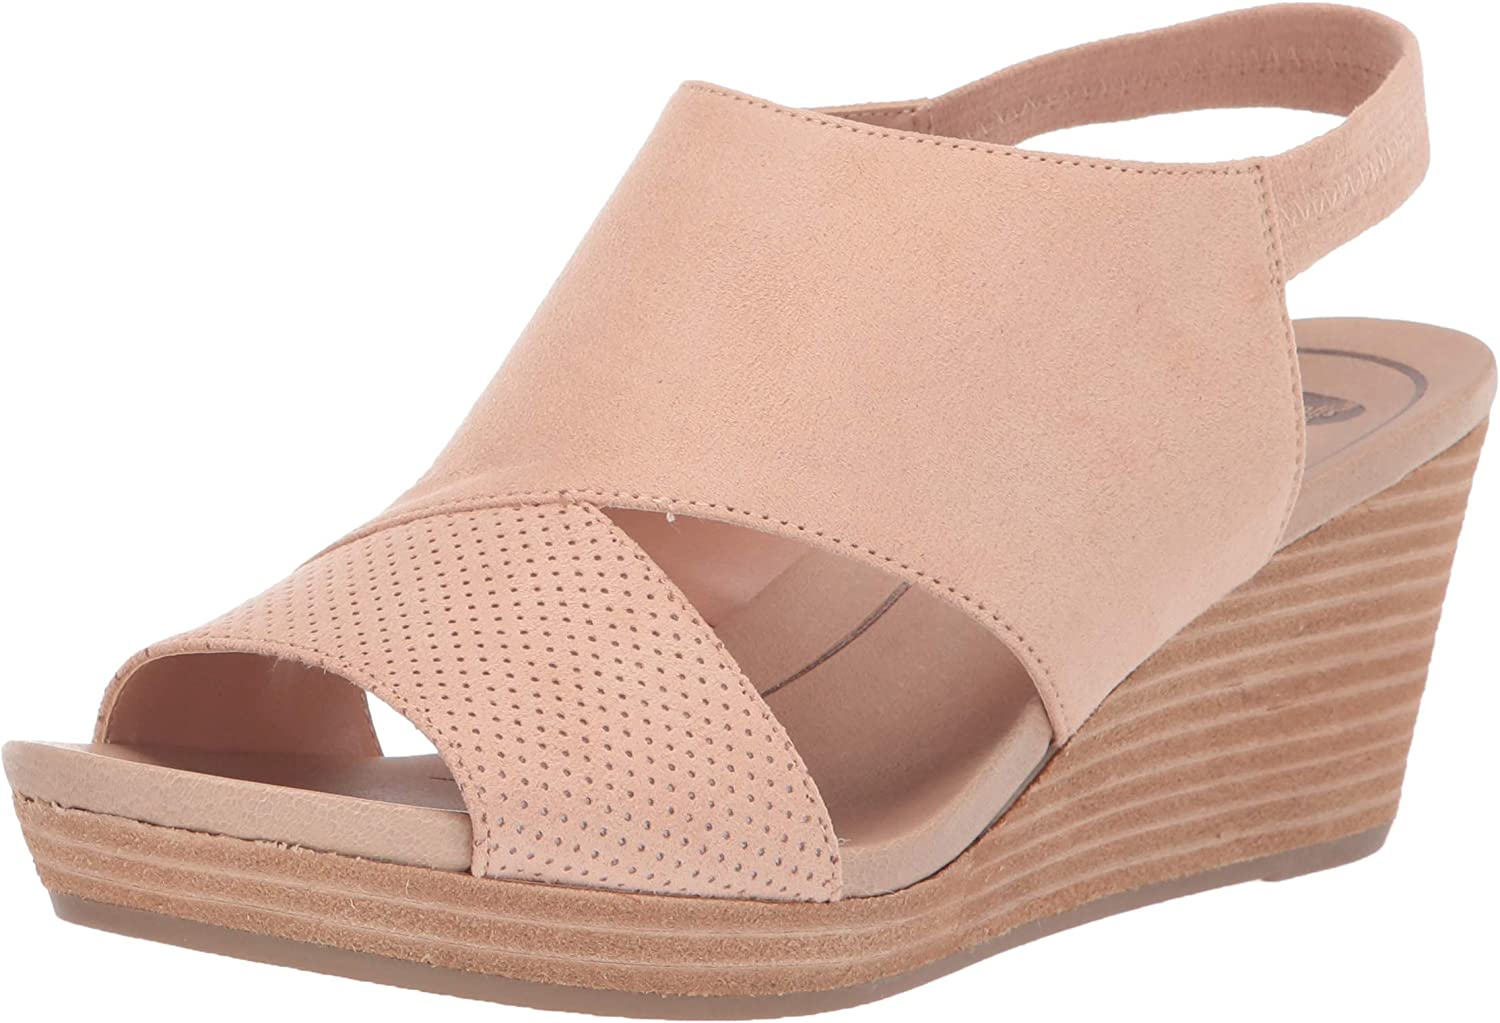 Dr. Scholl's Shoes womens Deluxe Wedge Award Sandal Brita